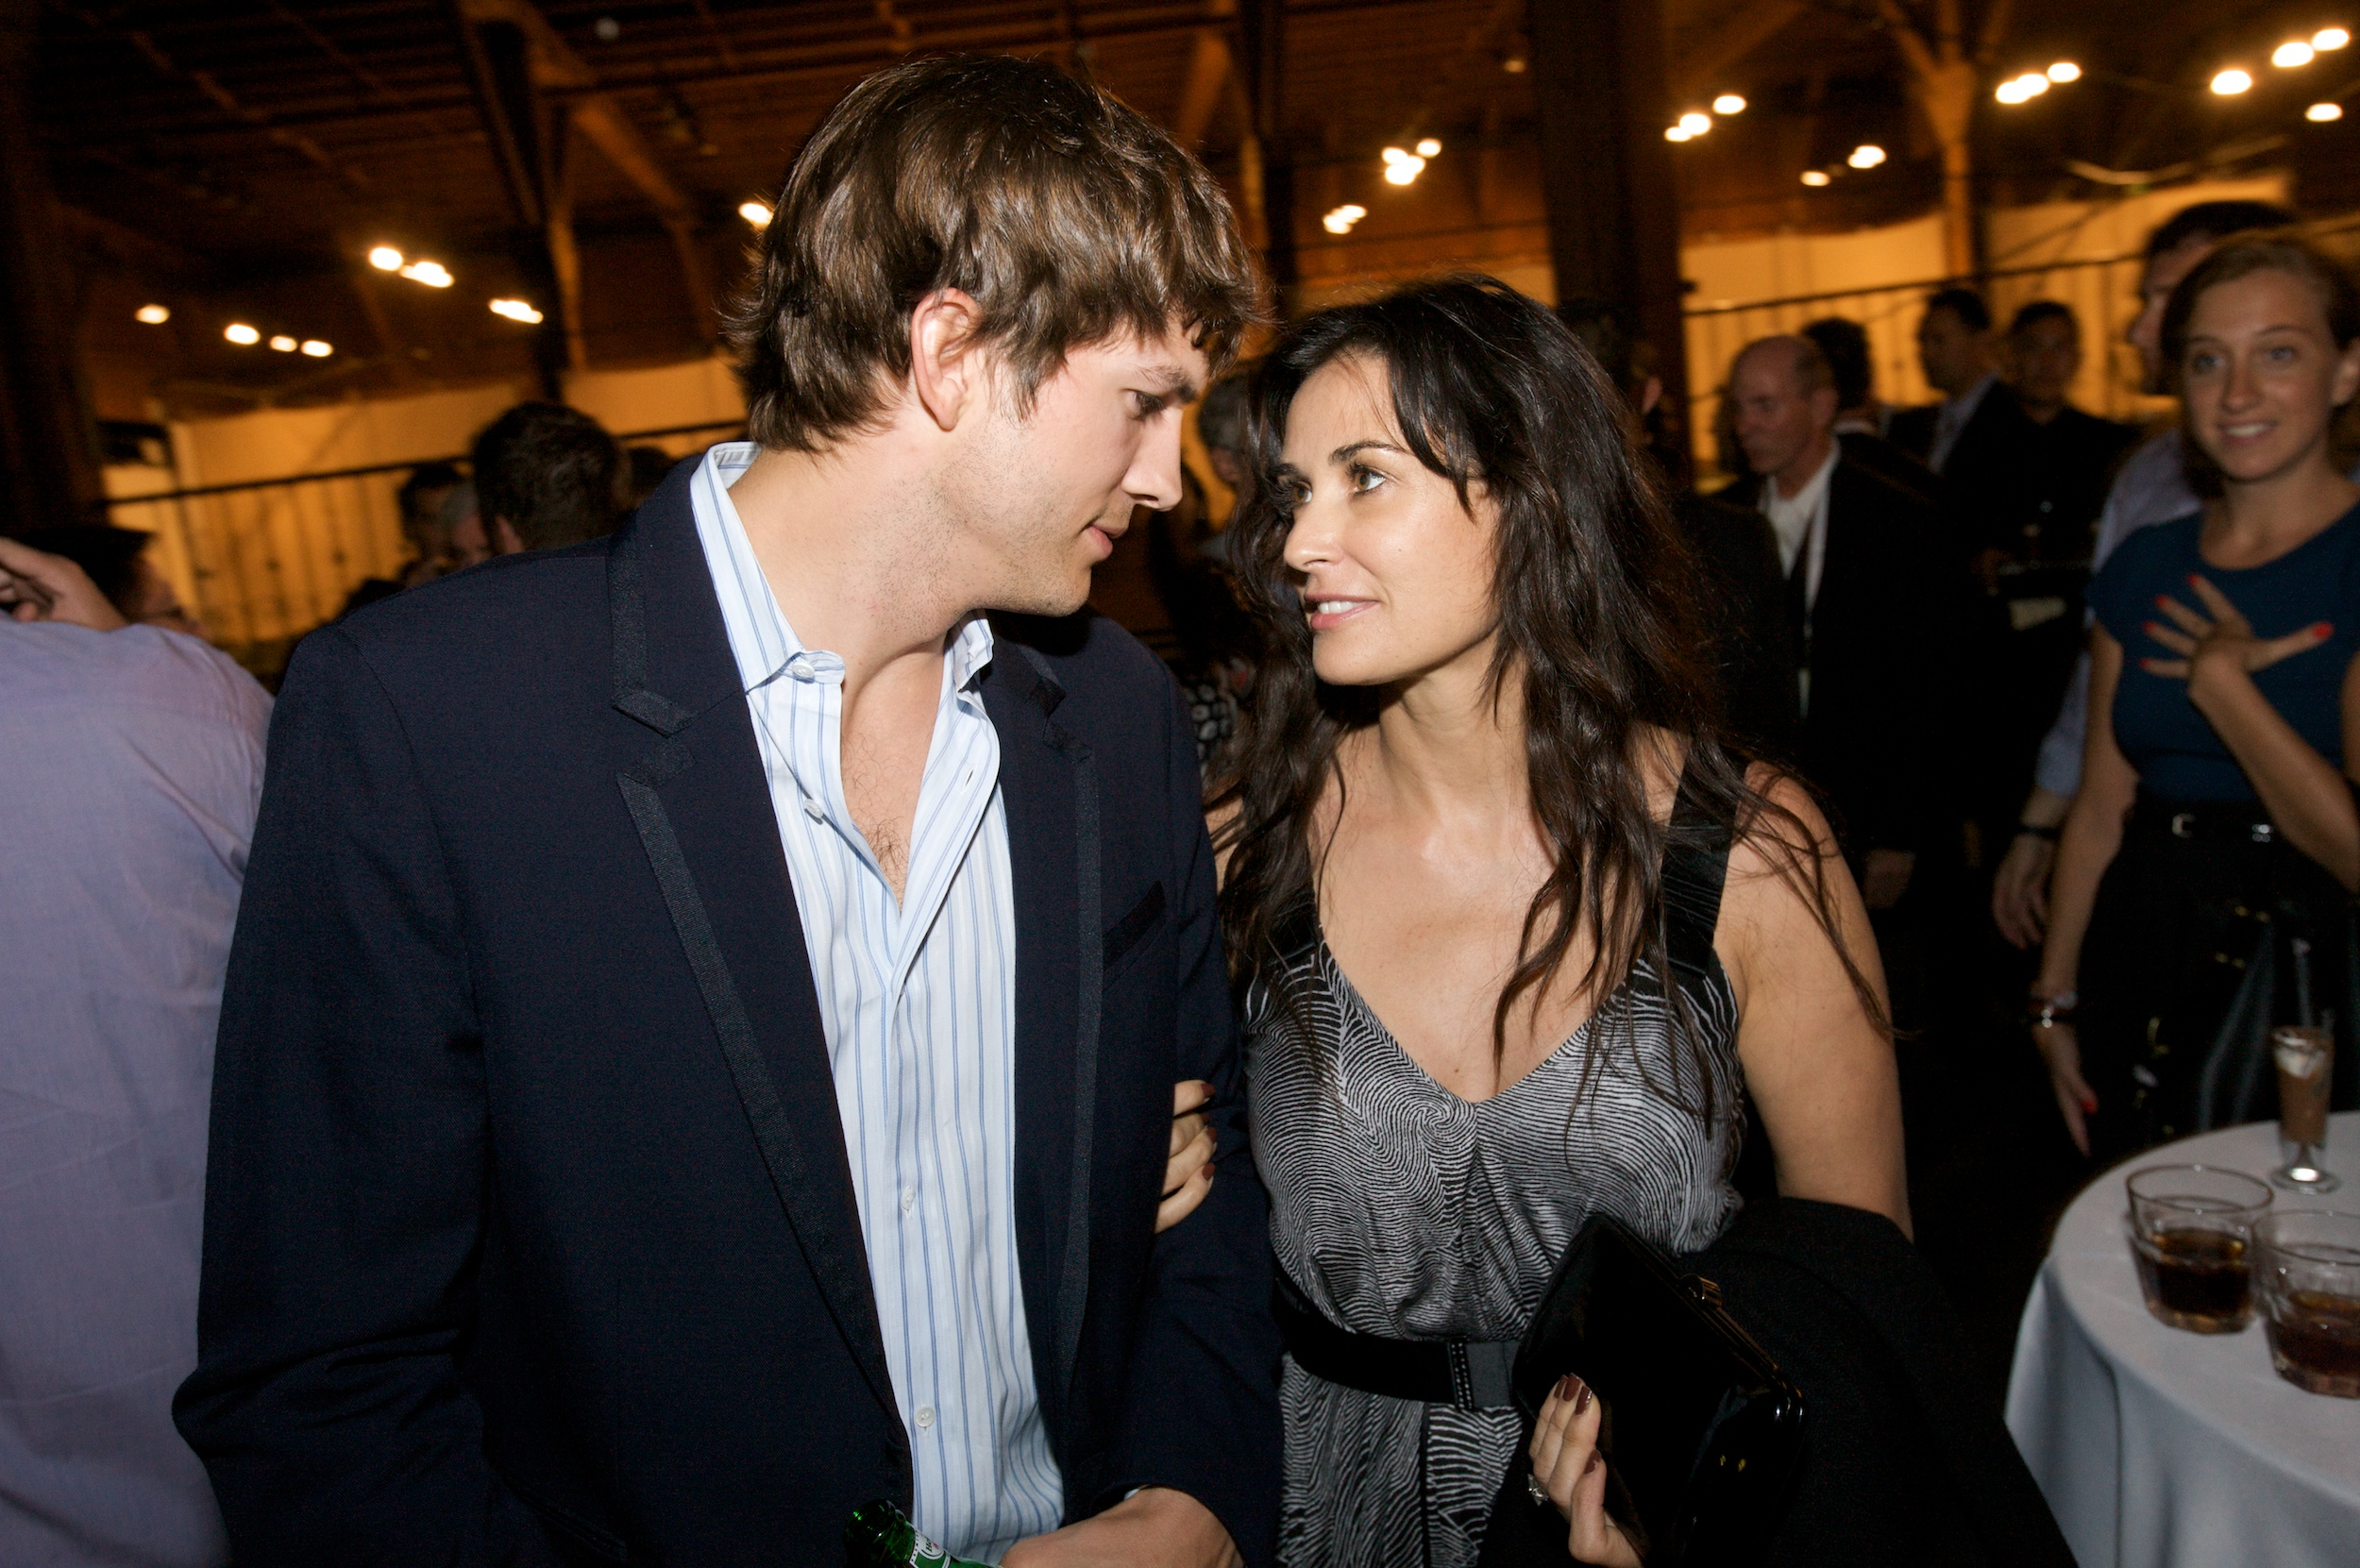 Ashton Kutcher and Demi Moore split